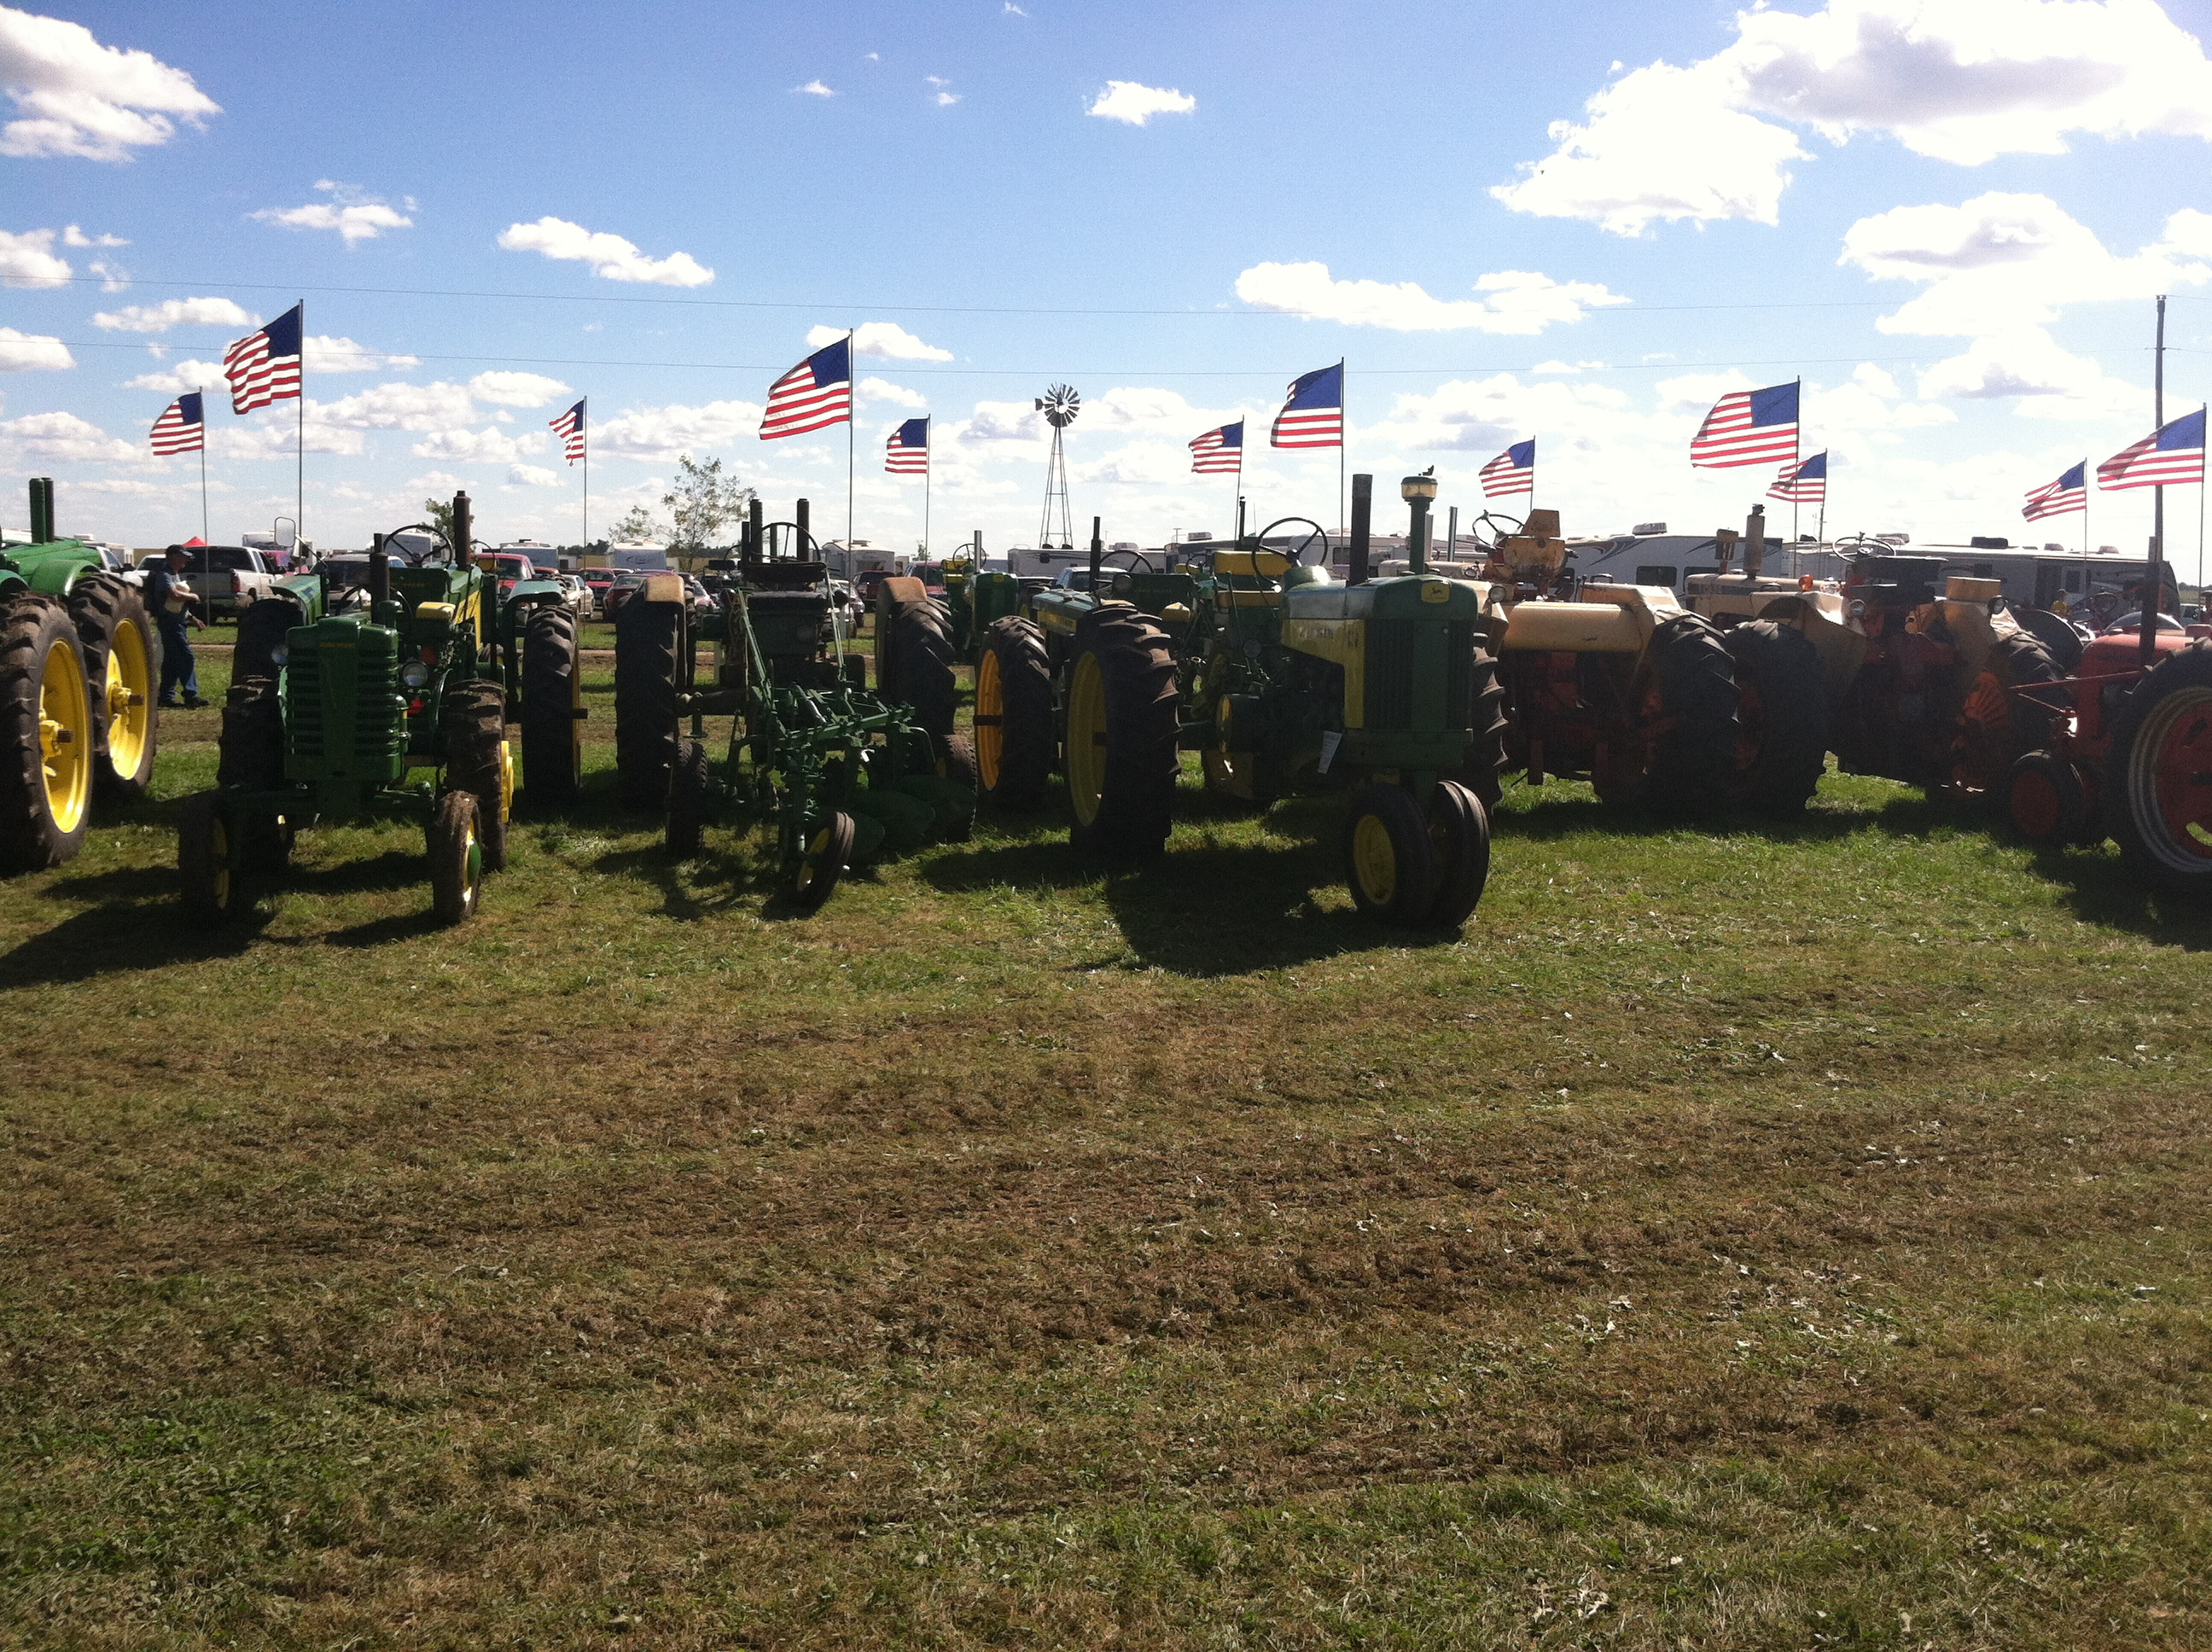 Flags and farm power at Carstens